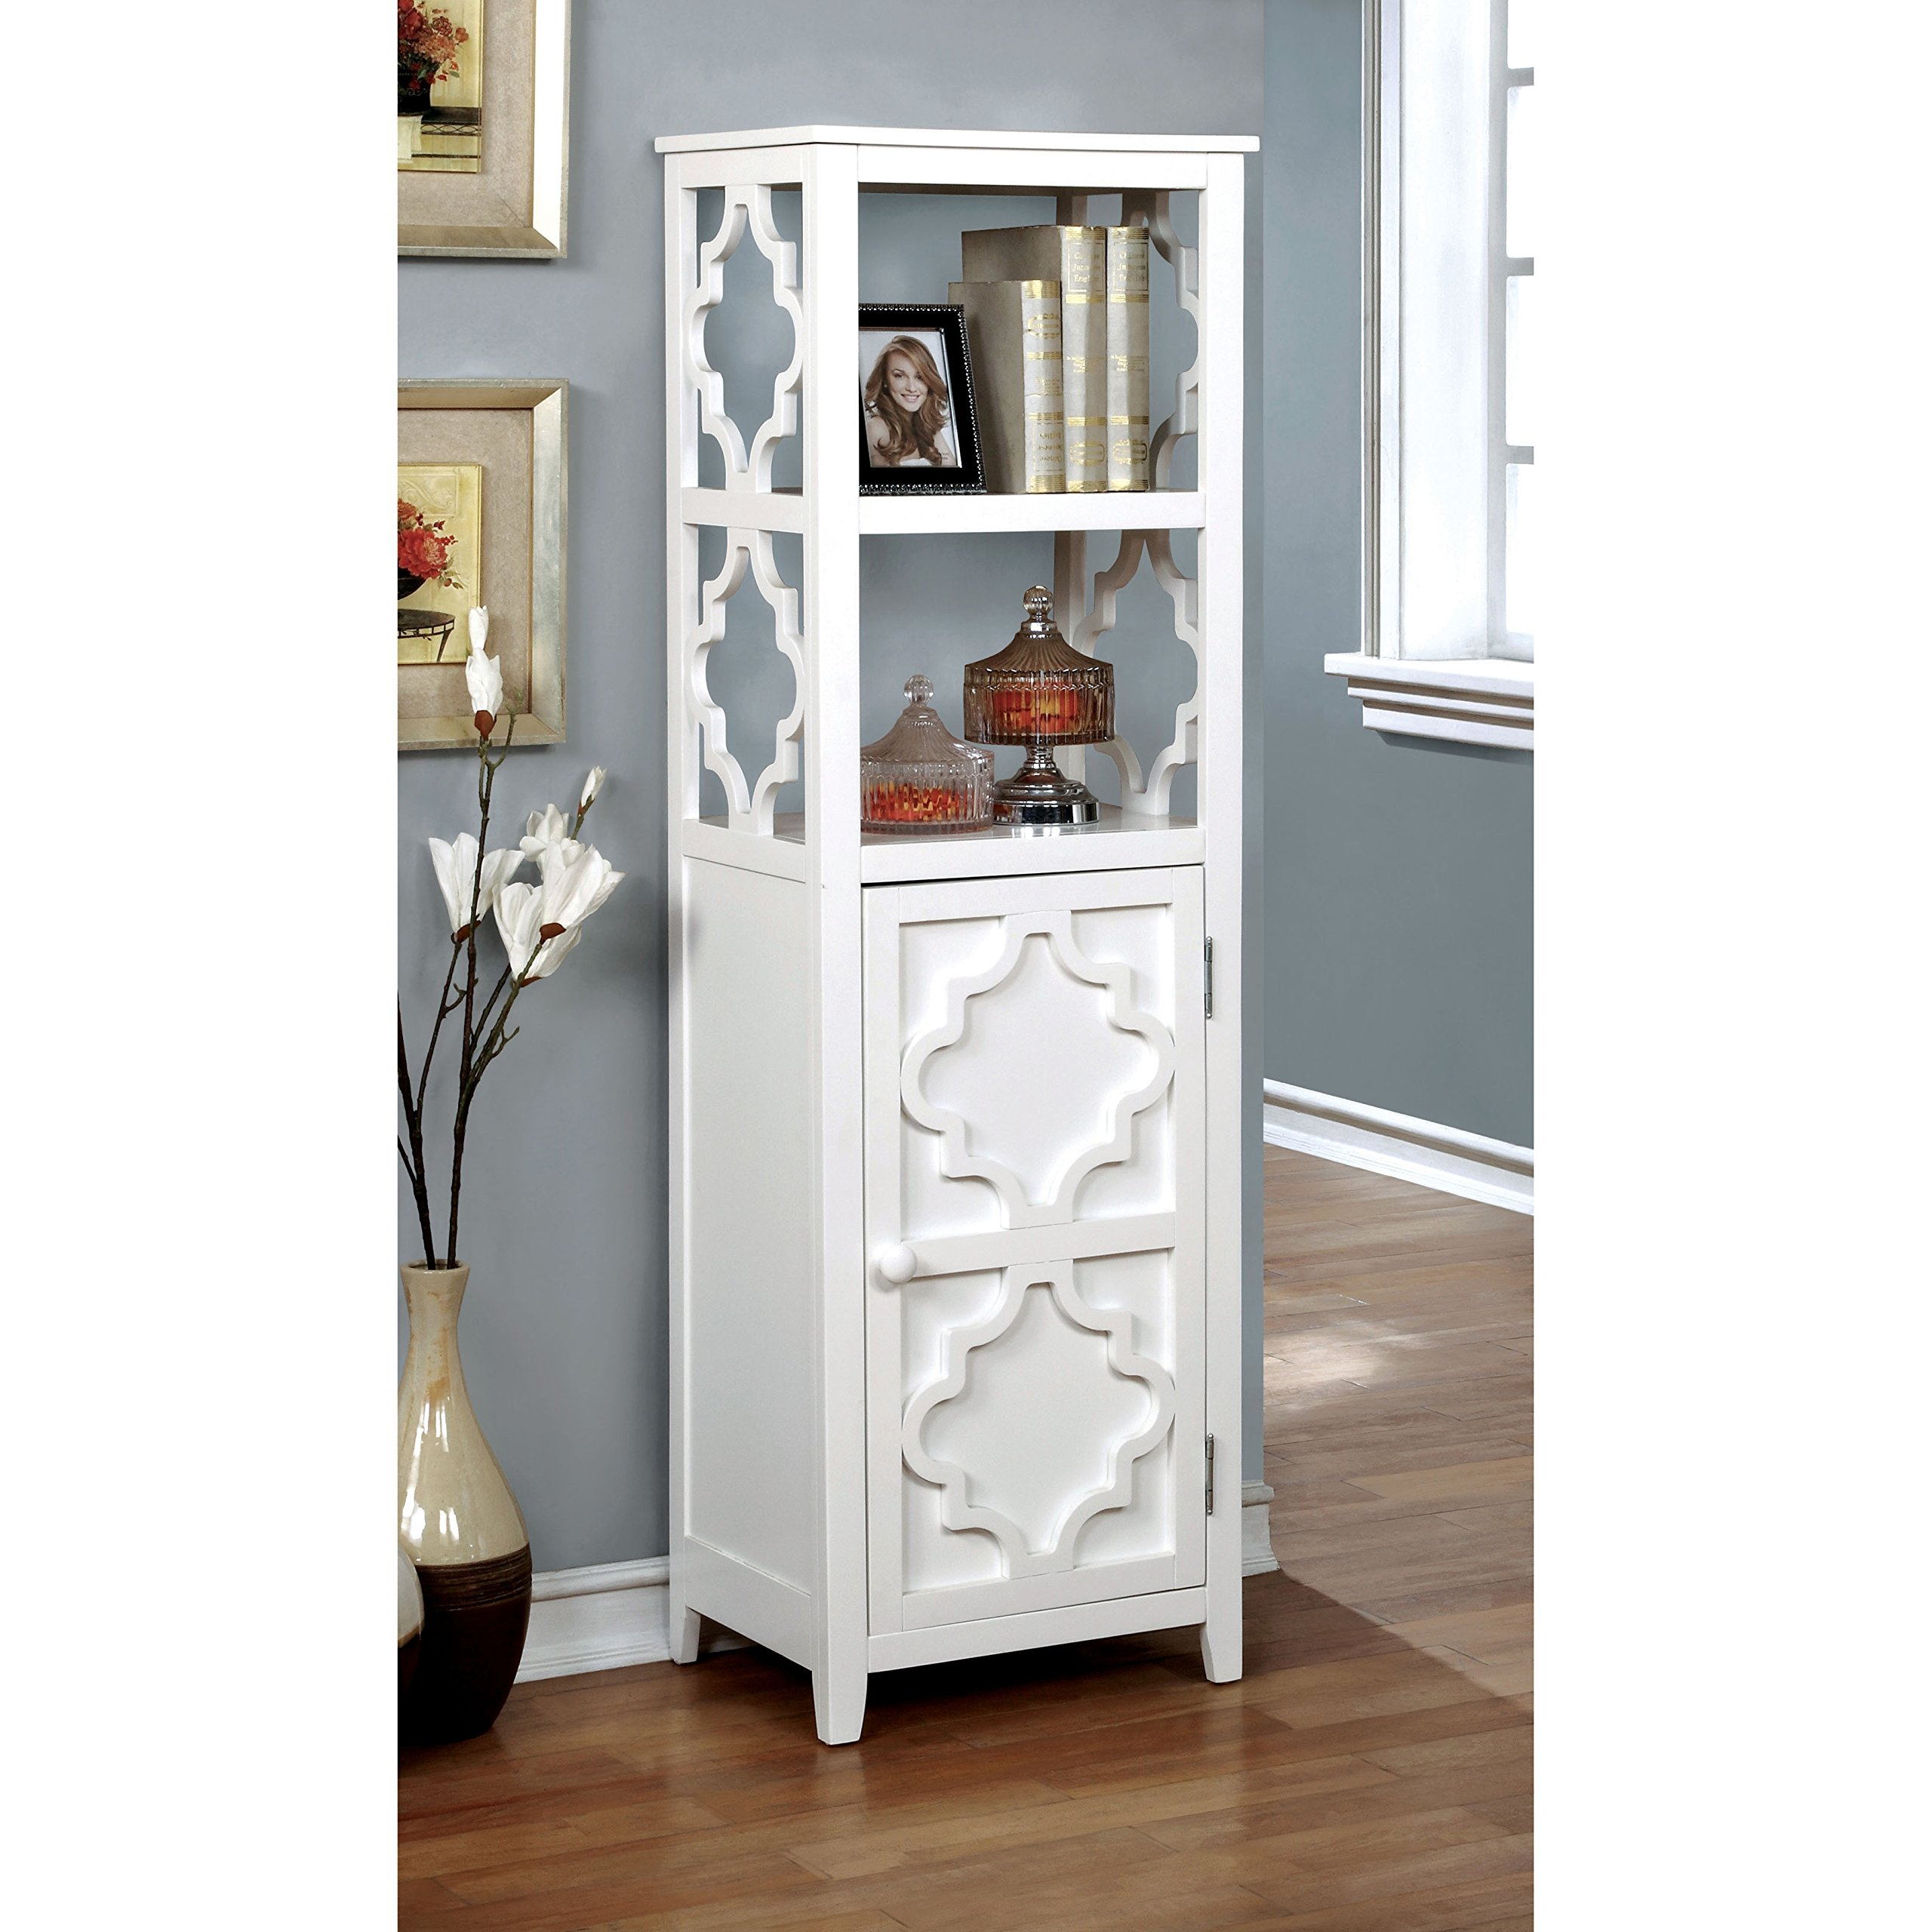 Furniture of America Mersela Contemporary White Quatrefoil Display Cabinet by Furniture of America